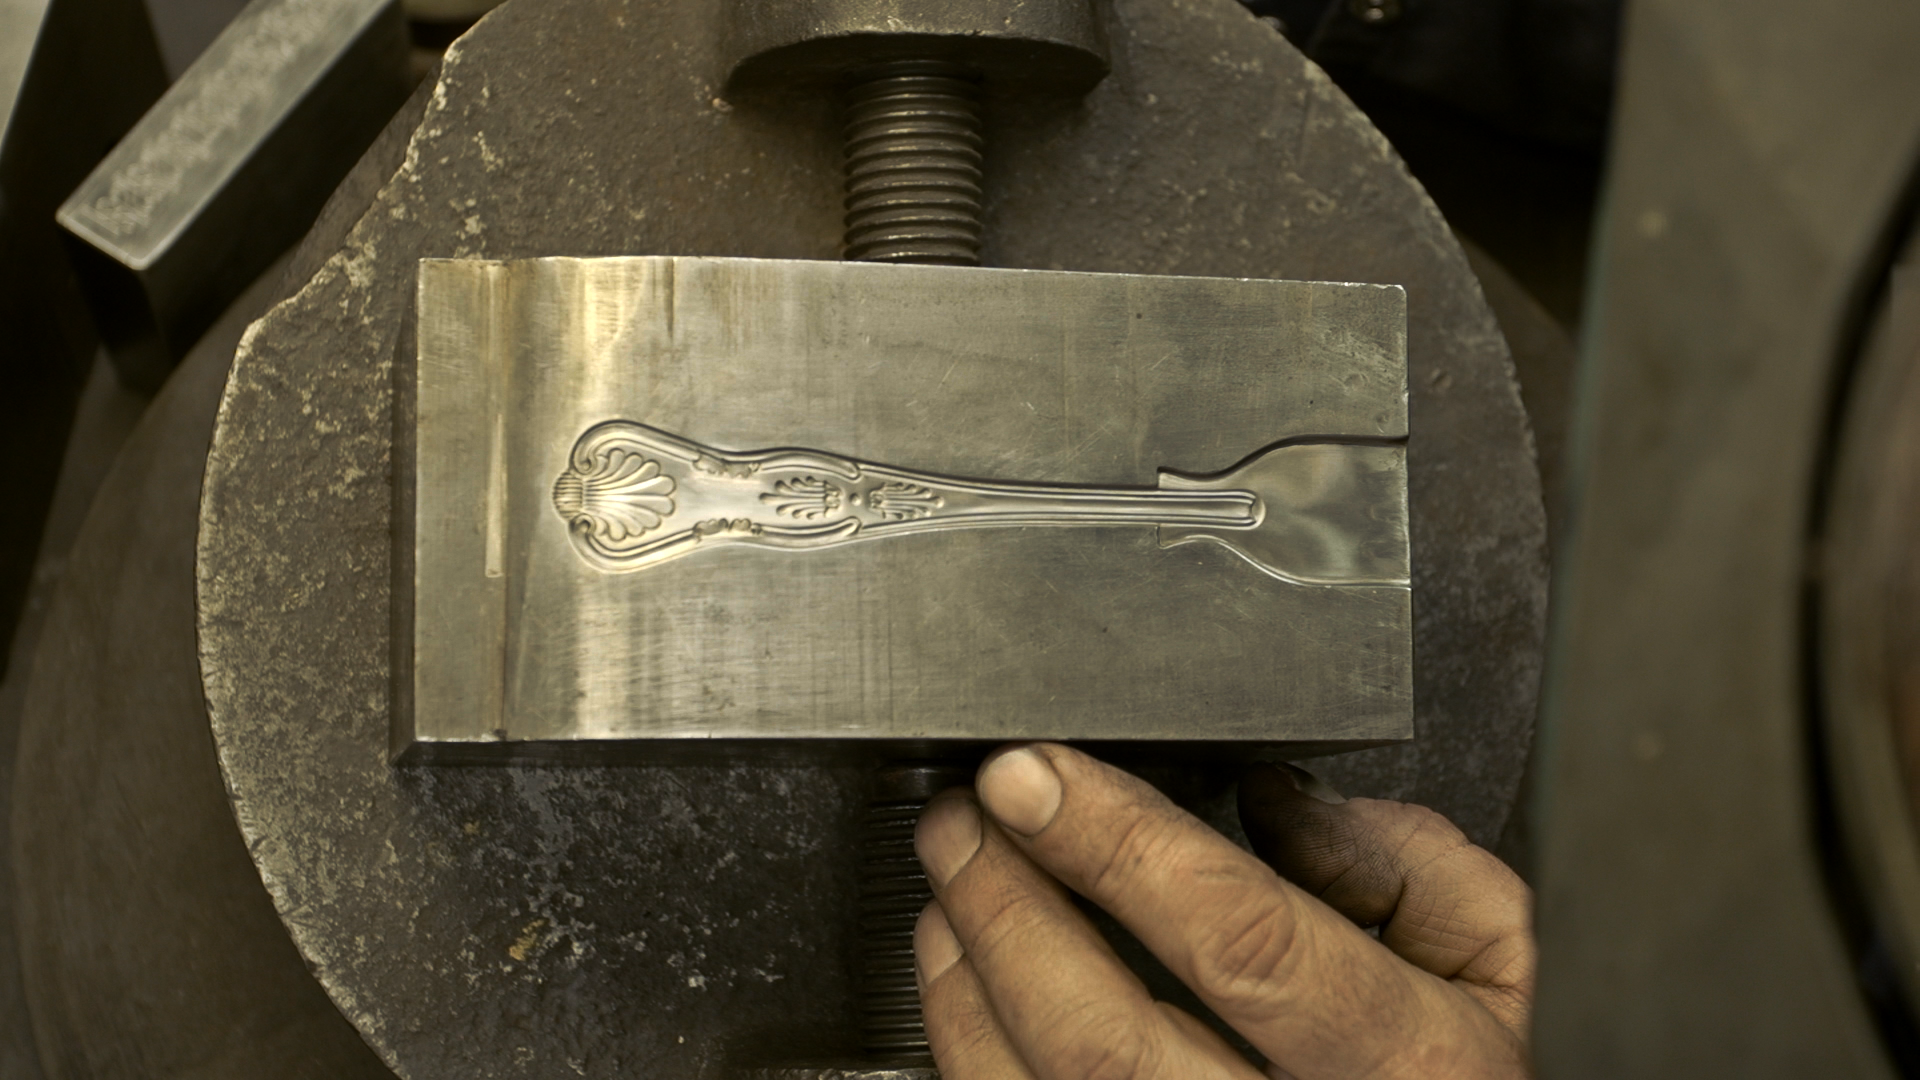 Our EPNS Cutlery has been handcrafted in our factory in Newbridge since 1934